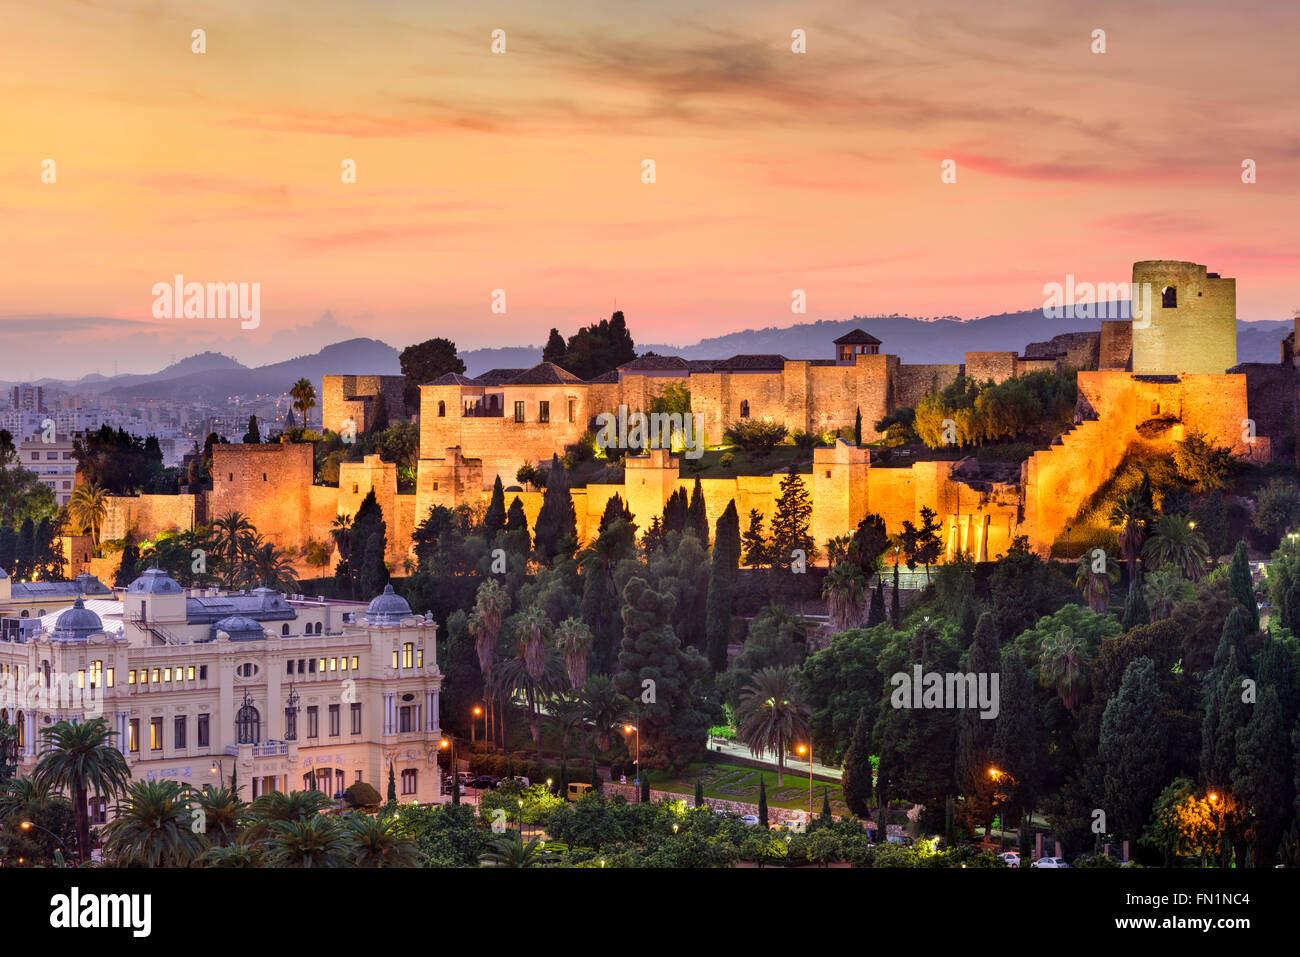 Malaga, Spain at the Alcazaba citadel. - Stock Image